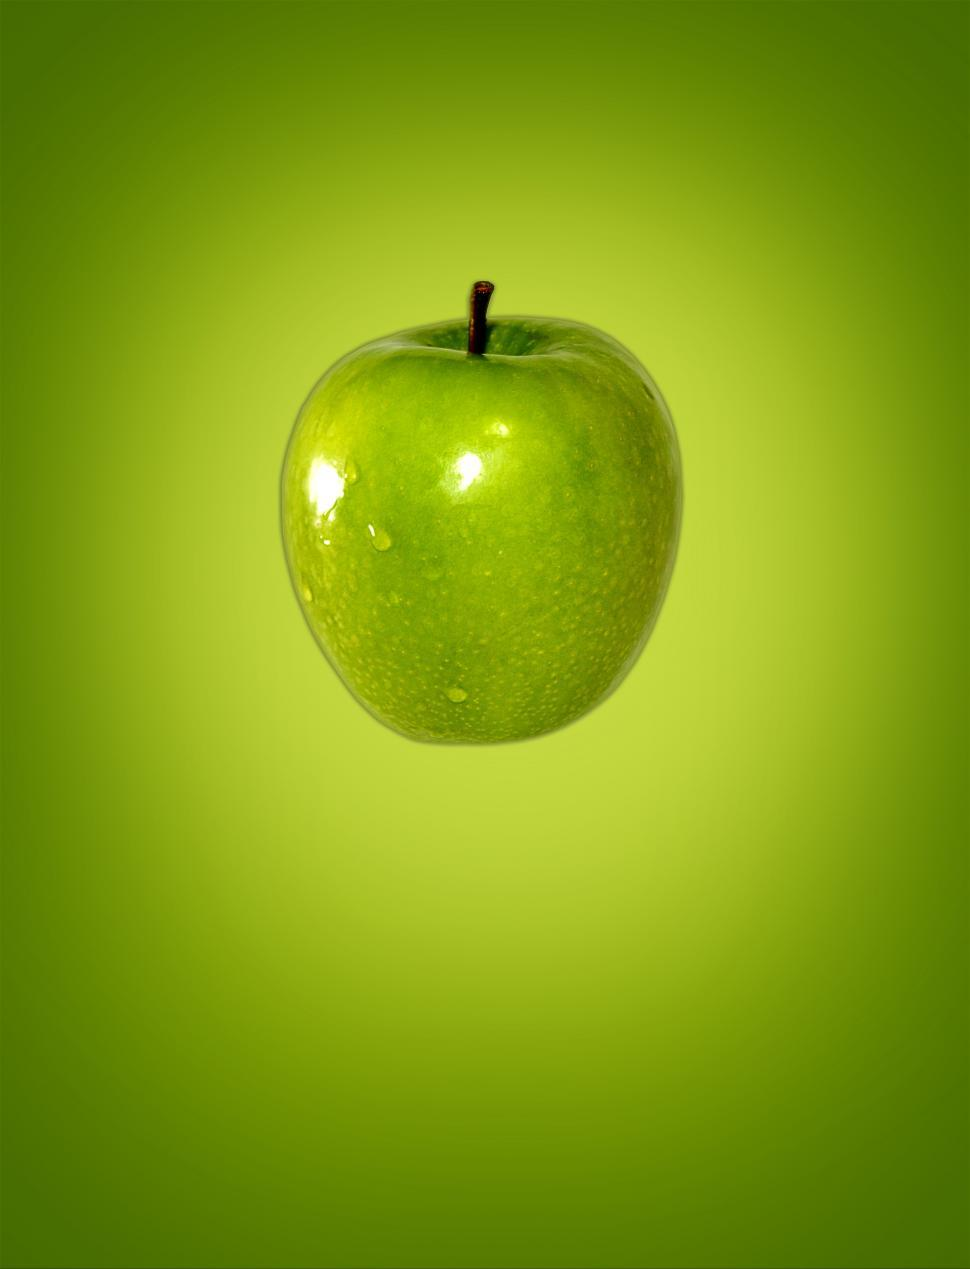 Download Free Stock Photo of Green apple on green background